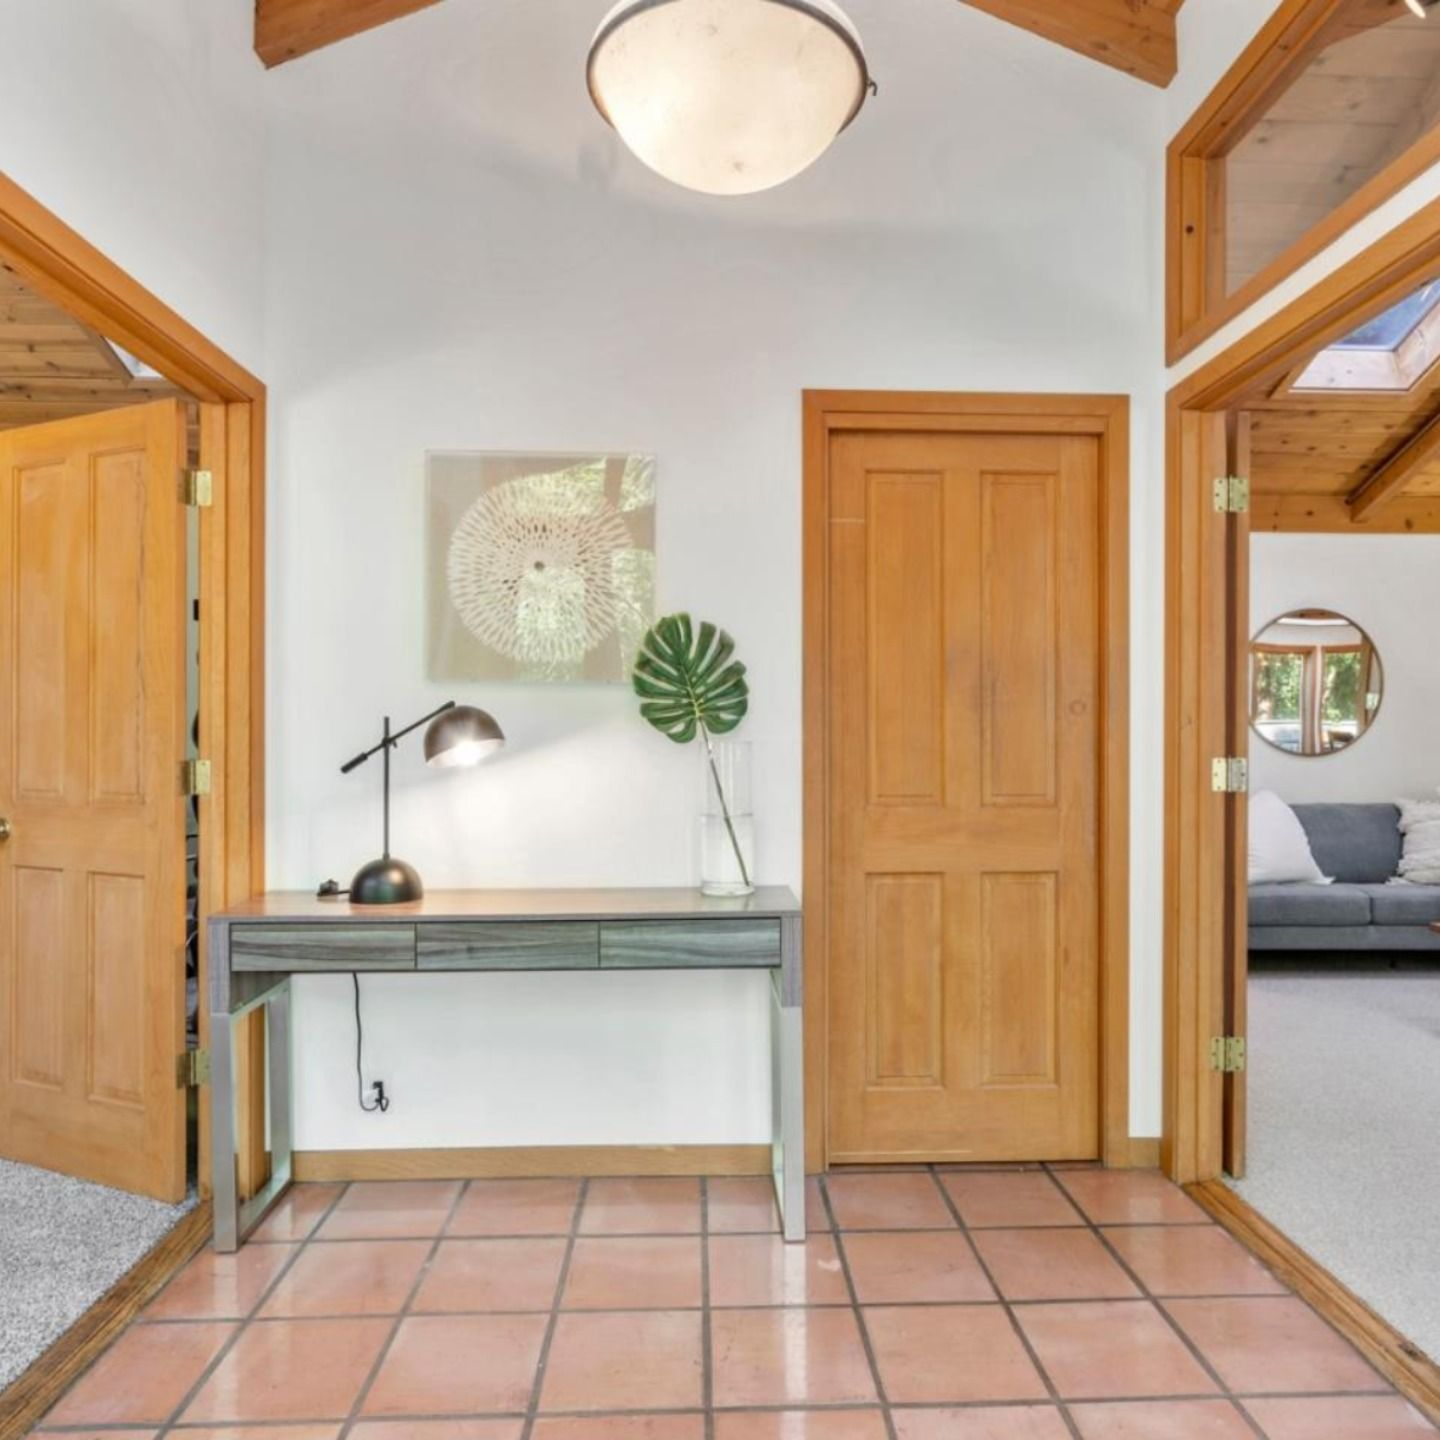 16151 Wood Acres RD, LOS GATOS, CA 95030 | $2,850,000 Feel free to contact me or schedule a showing  Gary Morgan Realty World-Todd Su & Company 408-504-3017 gary@morganrealtyusa.com  #interiordesign #realestate #siliconvalleyhomes #bayarea #siliconvalleyrealestate #bayareahomes #SanJose #realtor #homedesign #newhome #dreamhome #houseandhome #customhomes  #GaryMorgan #siliconvalley #Morganrealtyusa #SanJoseHomesForSale #homes #housingmarket